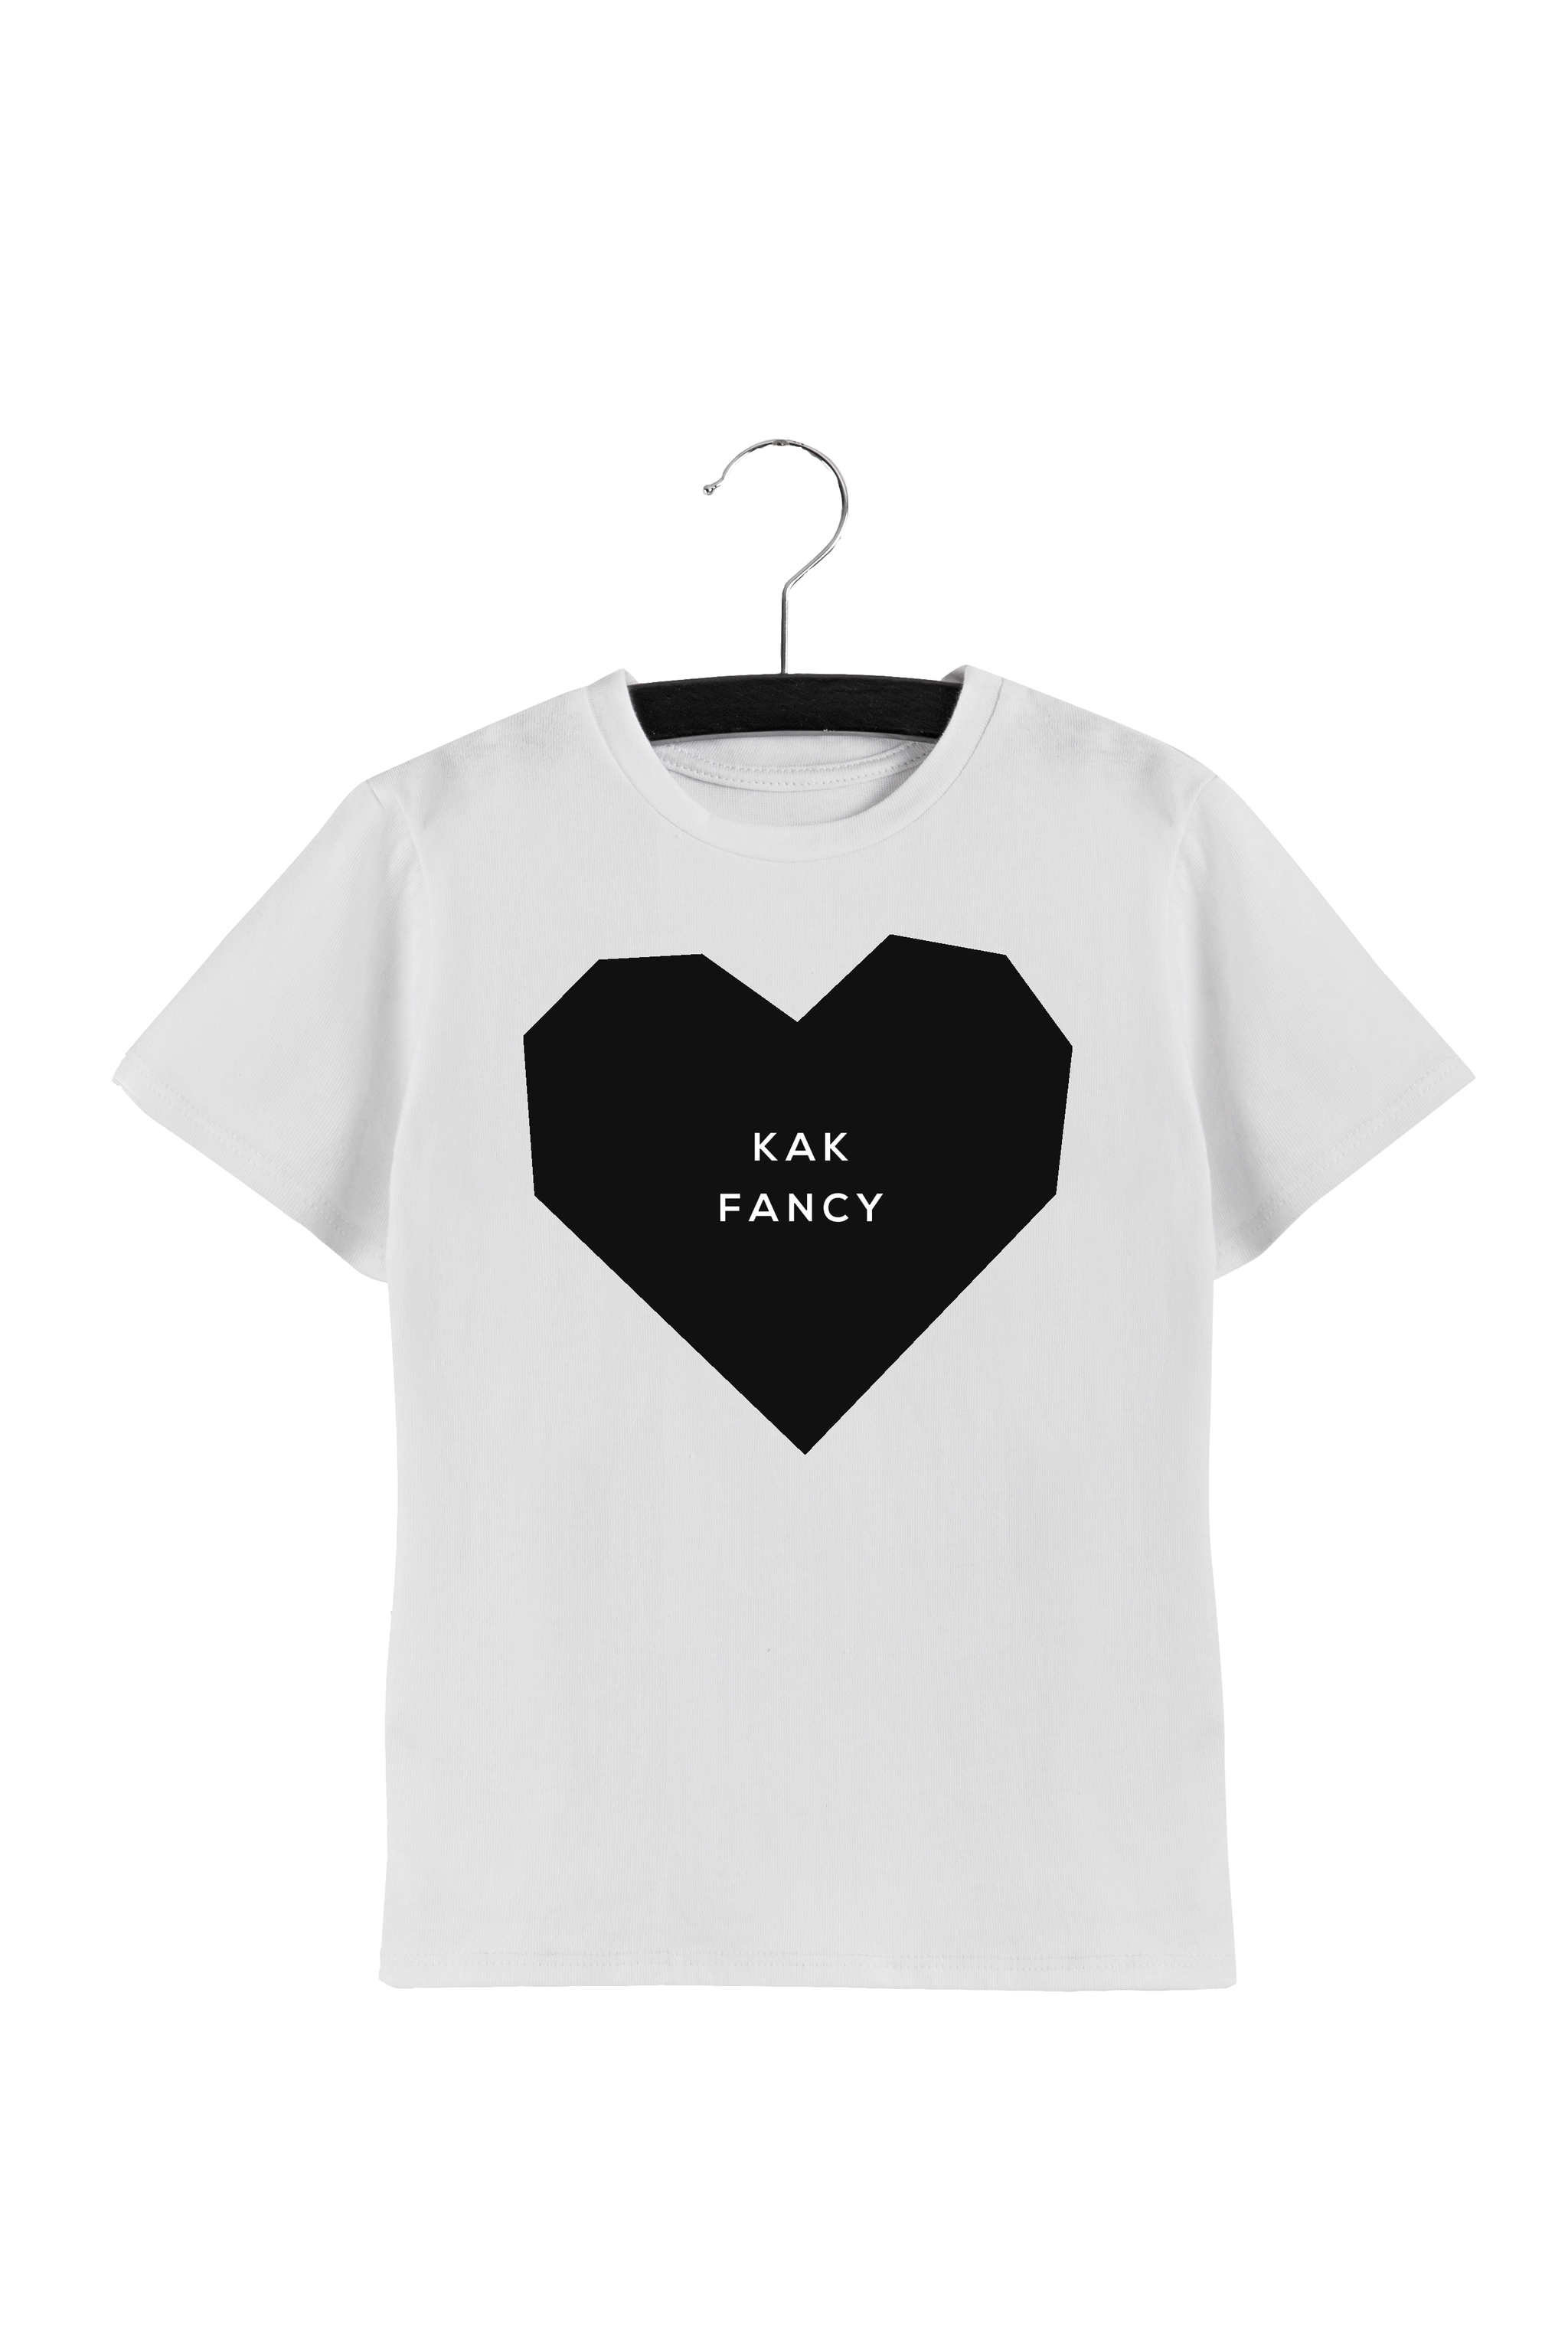 KAK FANCY KIDS TEE